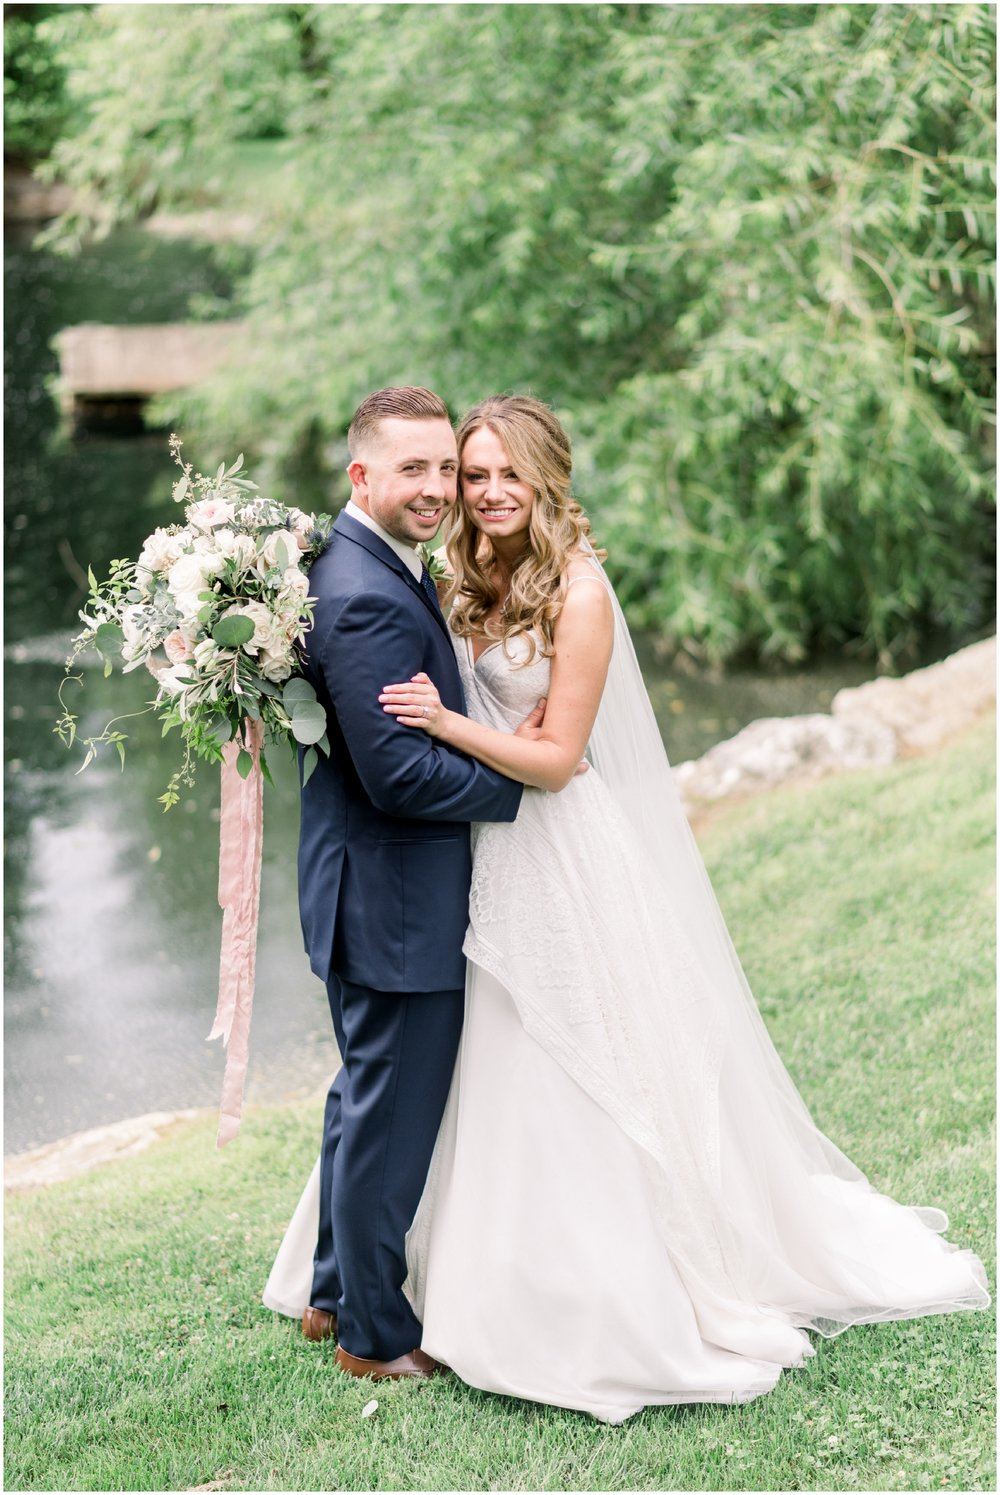 Krista Brackin Photography | July Wedding at The Farm at Eagle's Ridge_0014.jpg